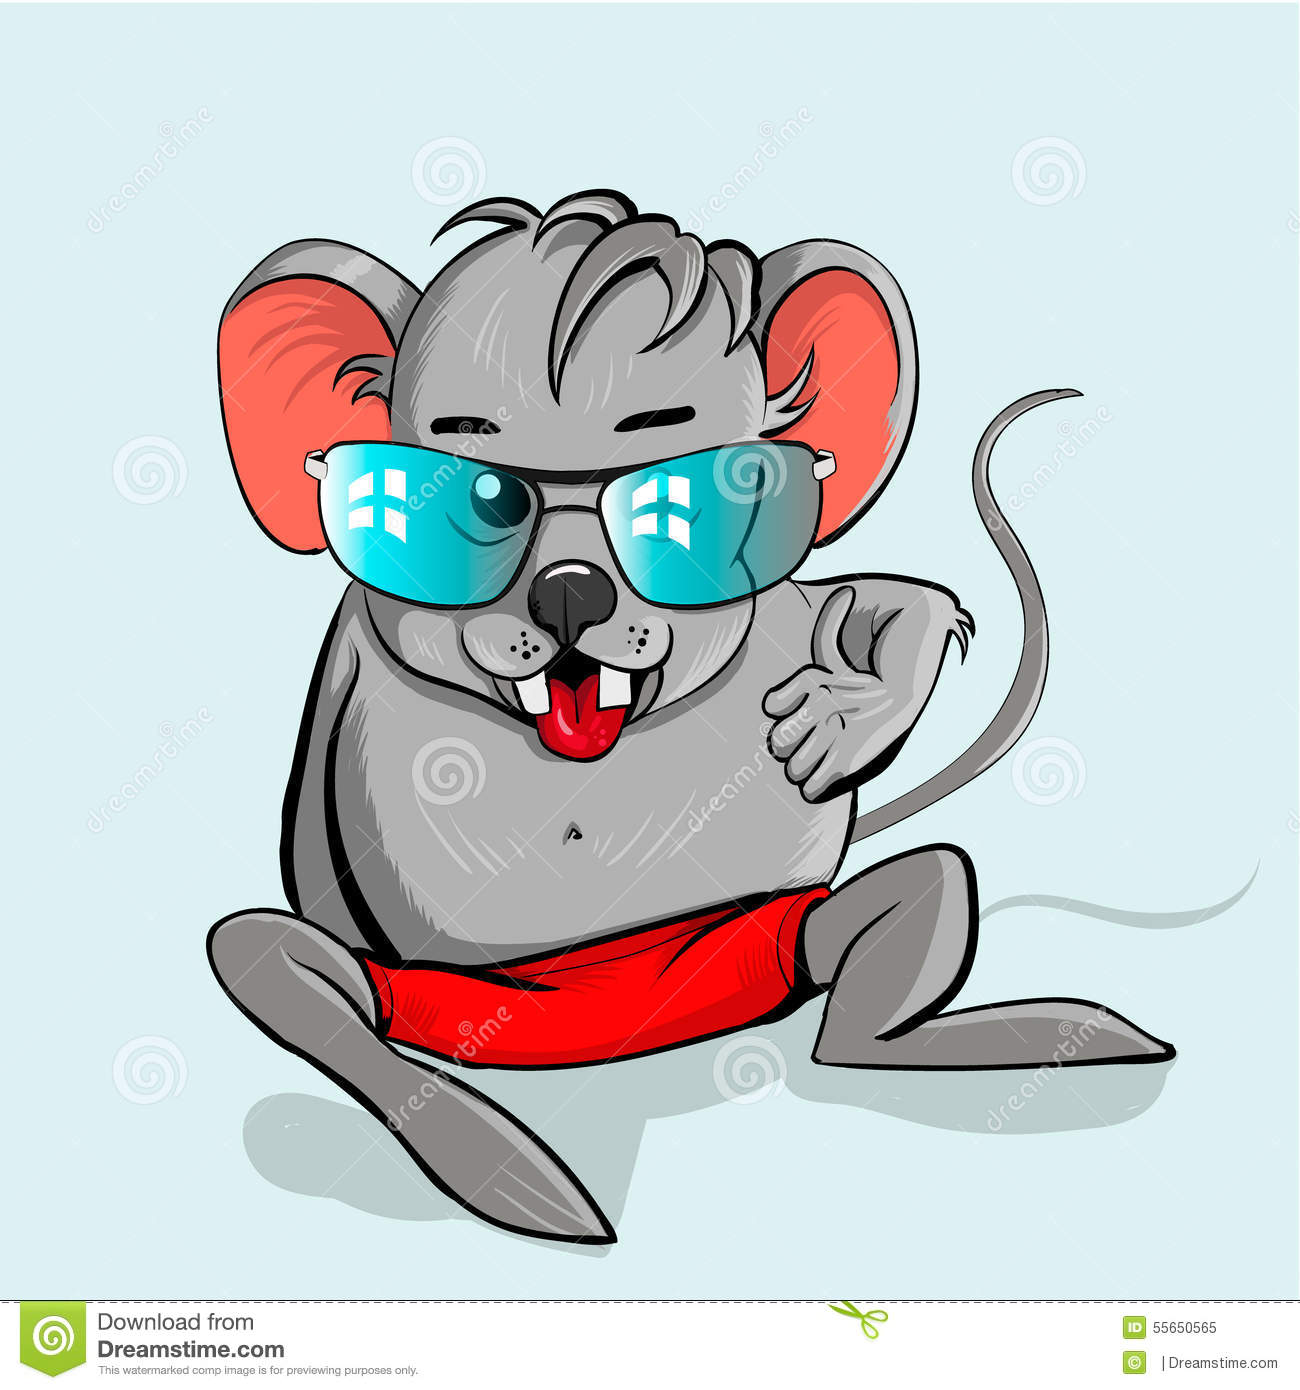 Cartoon Mouse Wearing Glasses Stock Vector